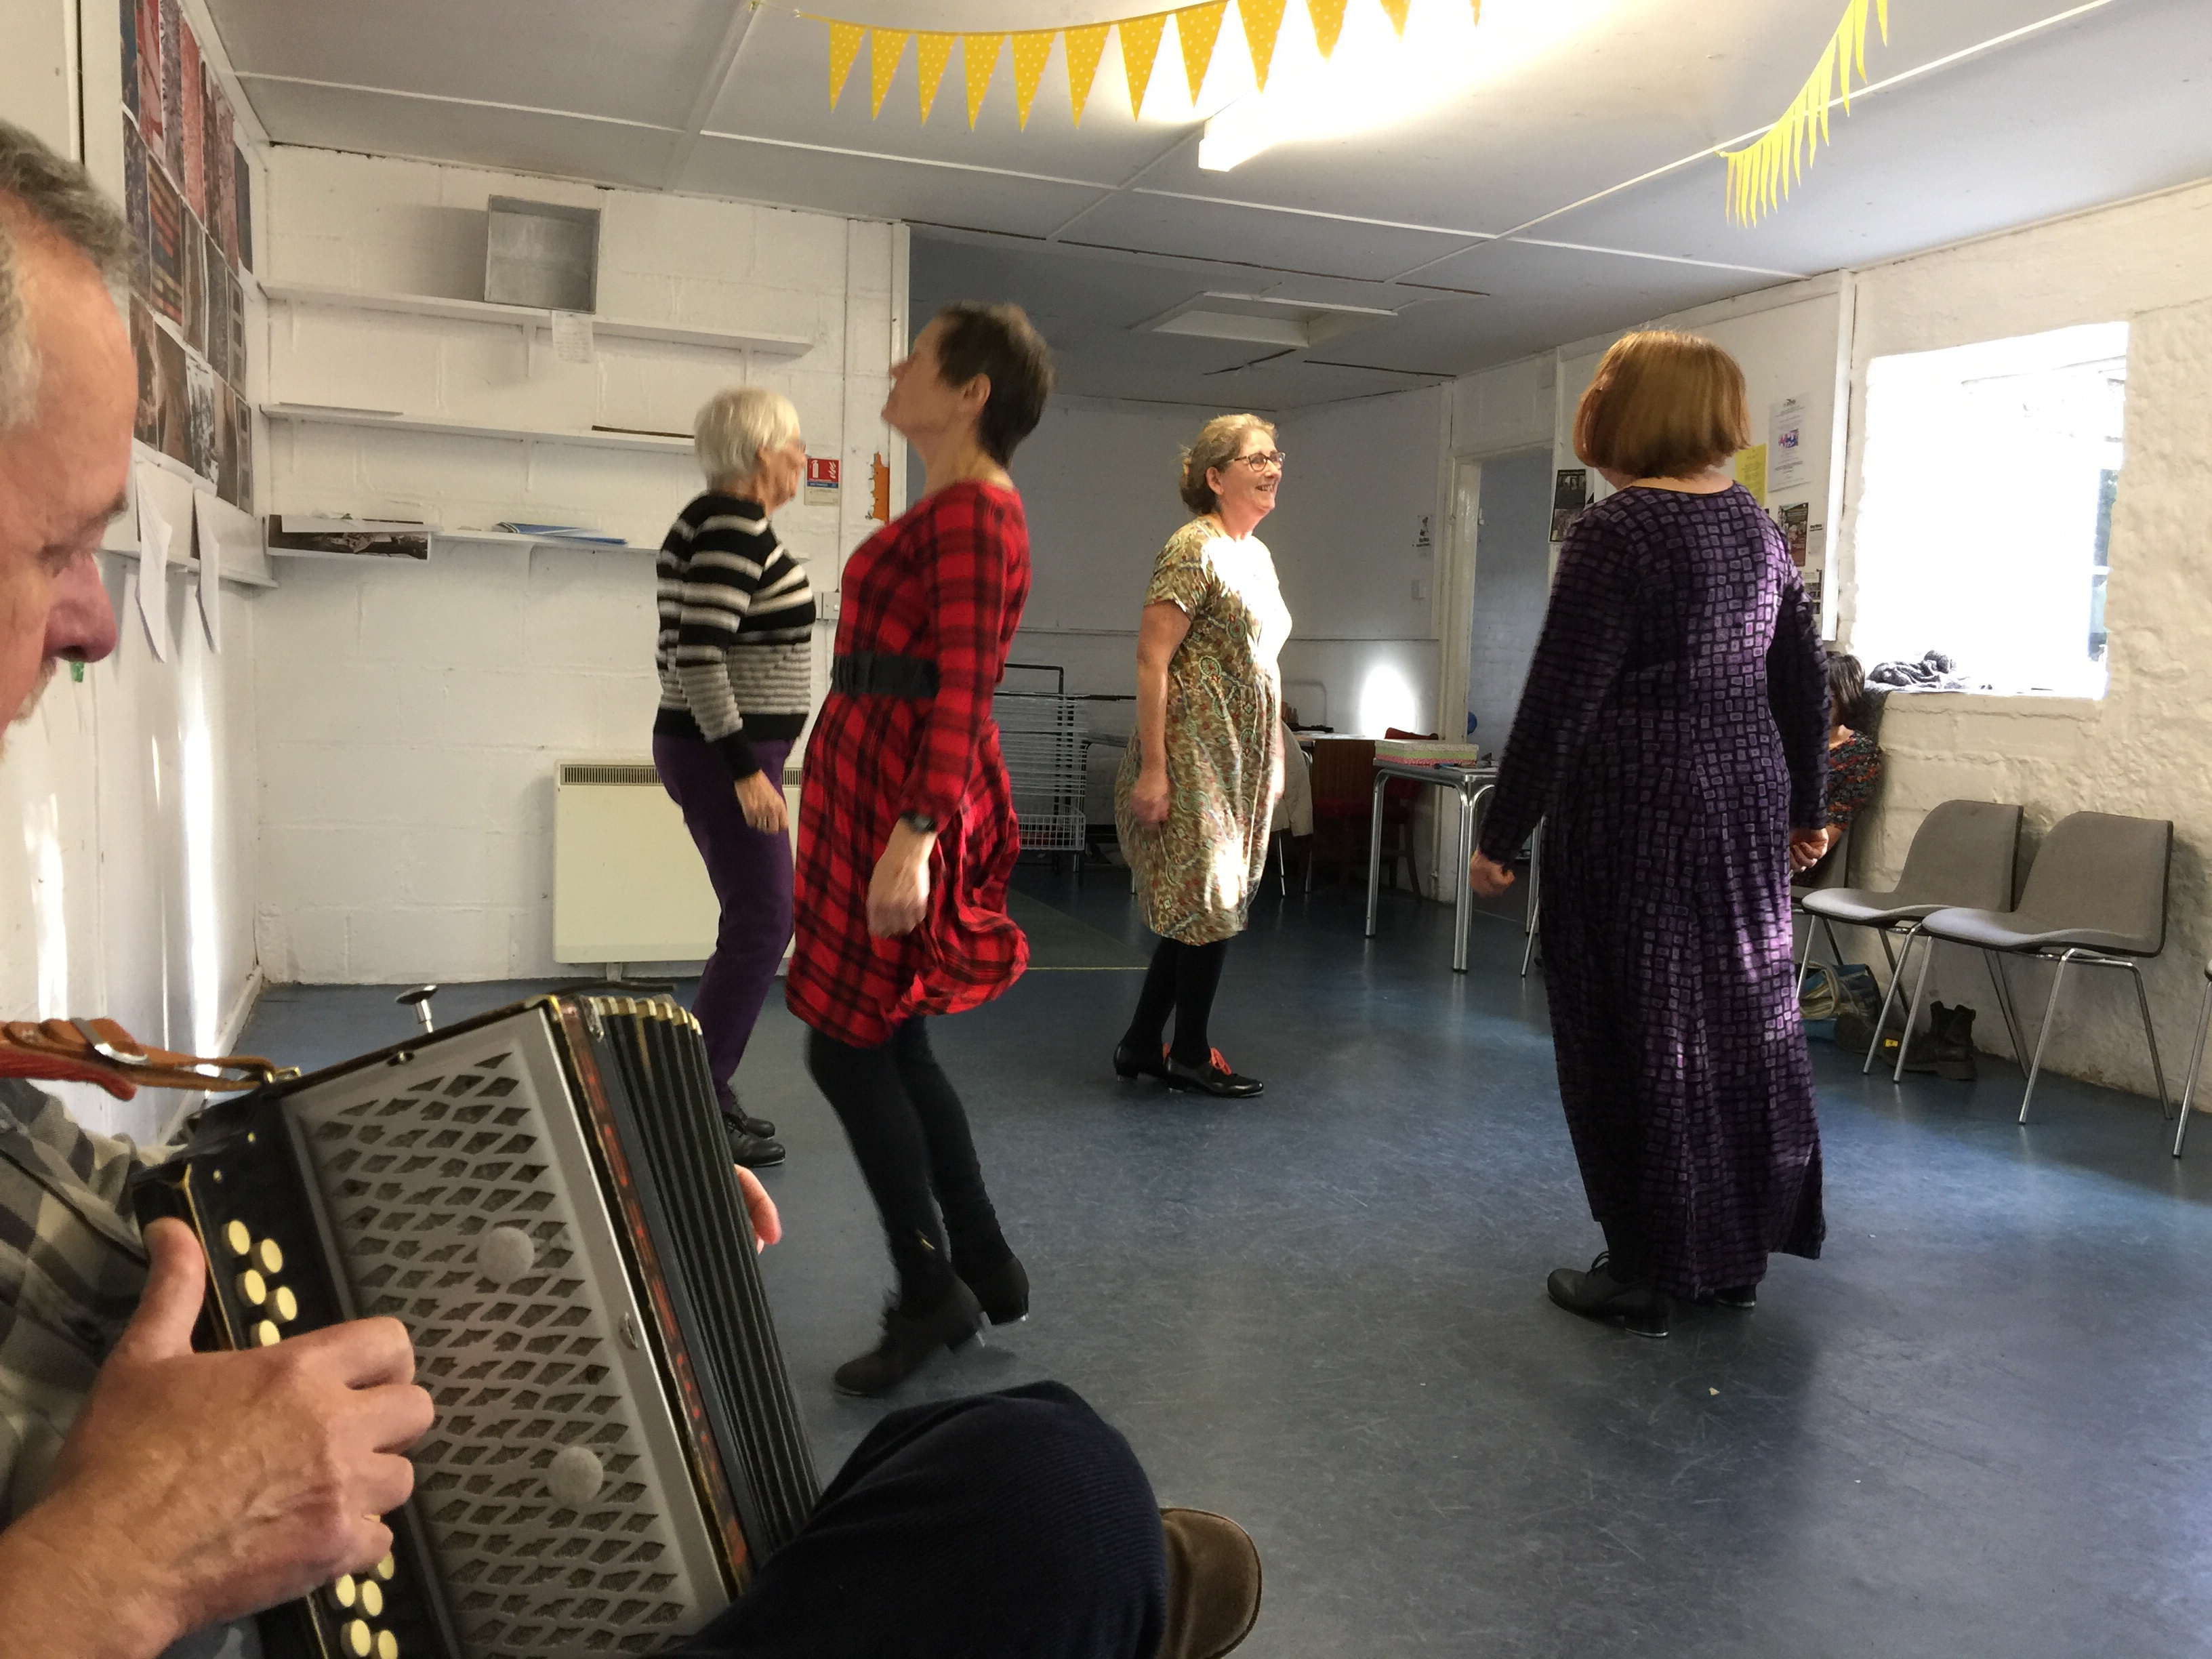 Cornish dancing